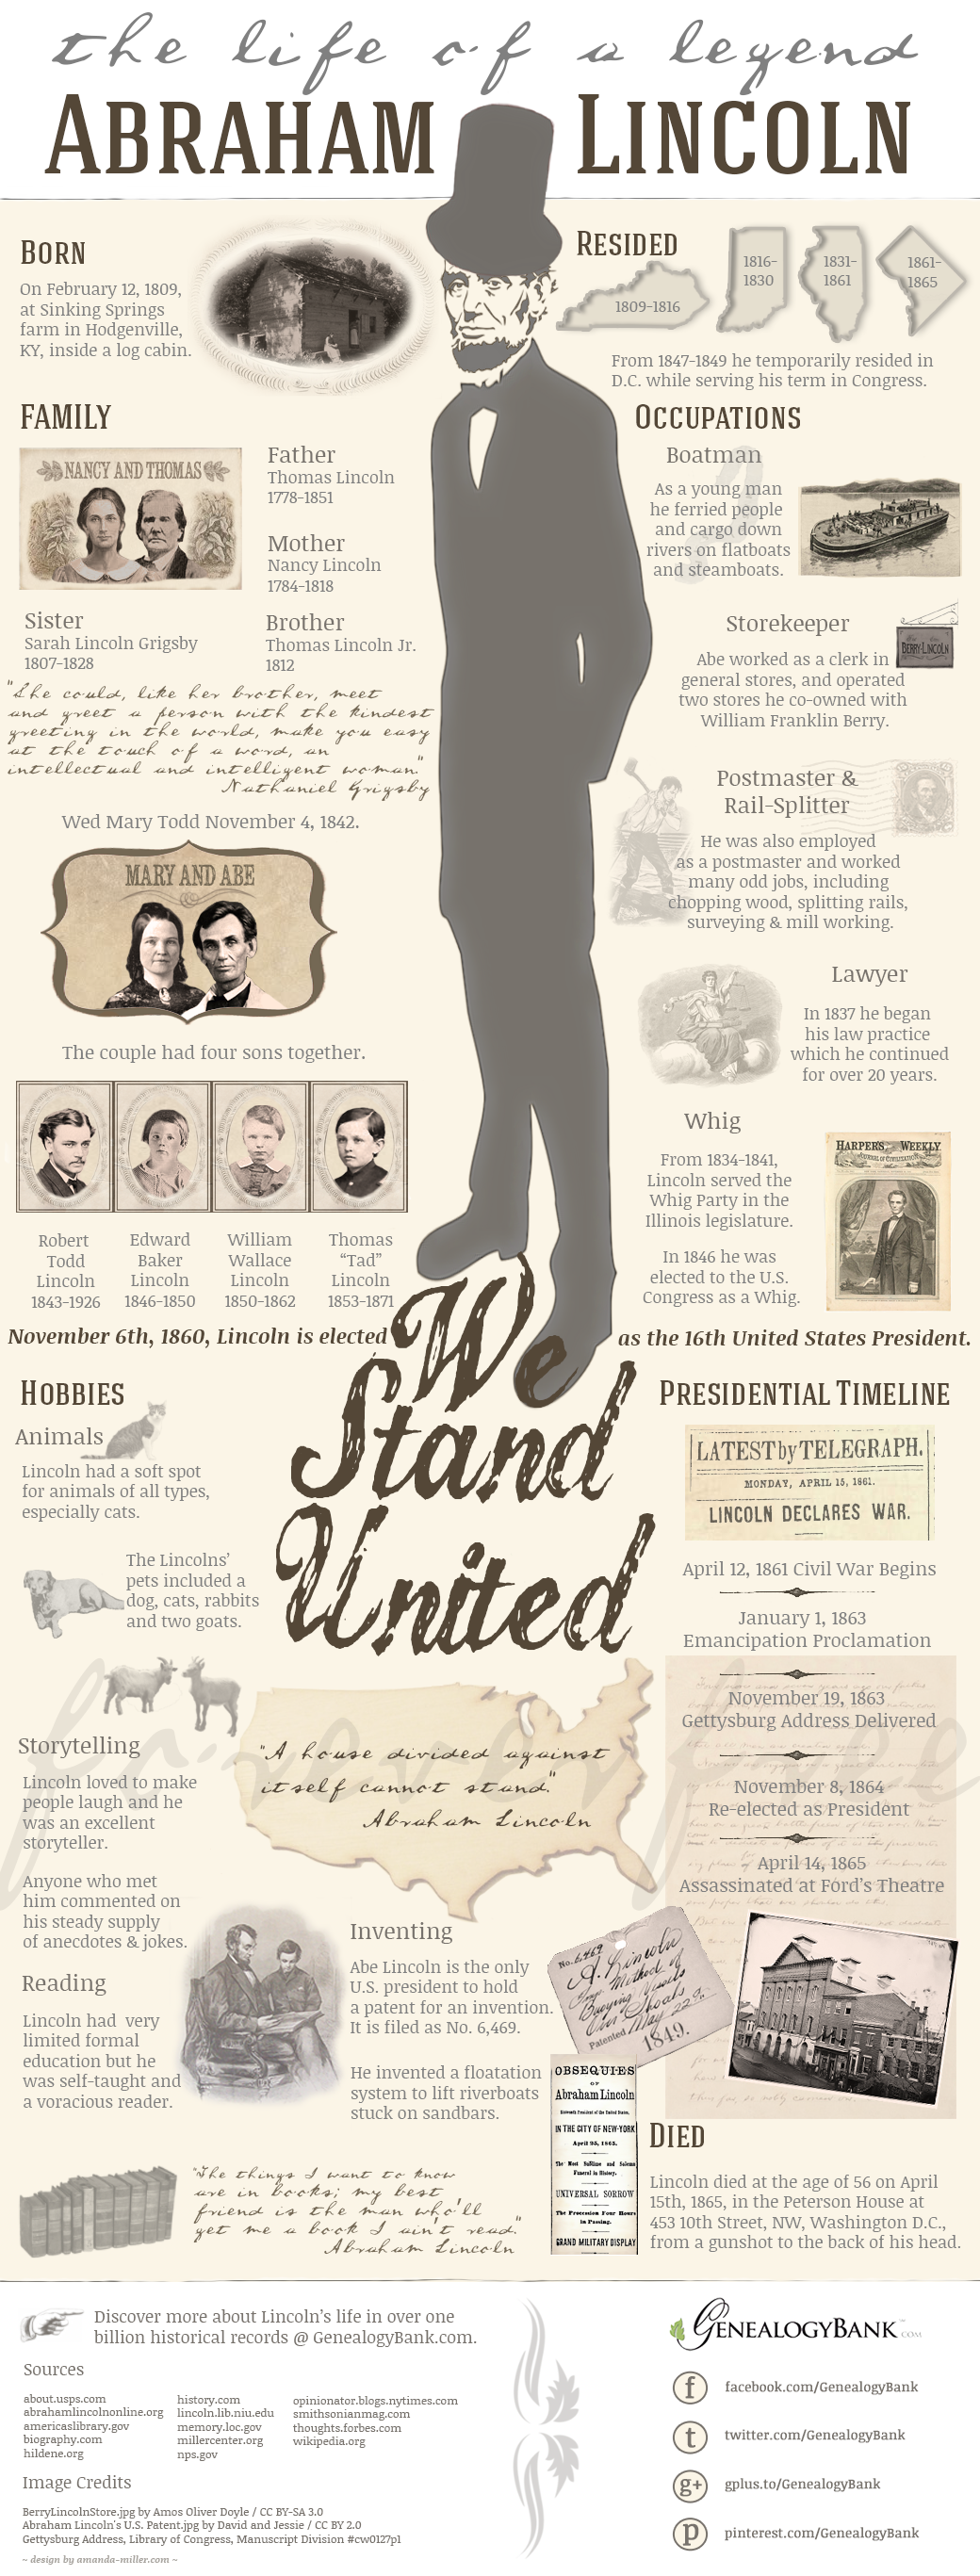 Abraham Lincoln's Family & Life History